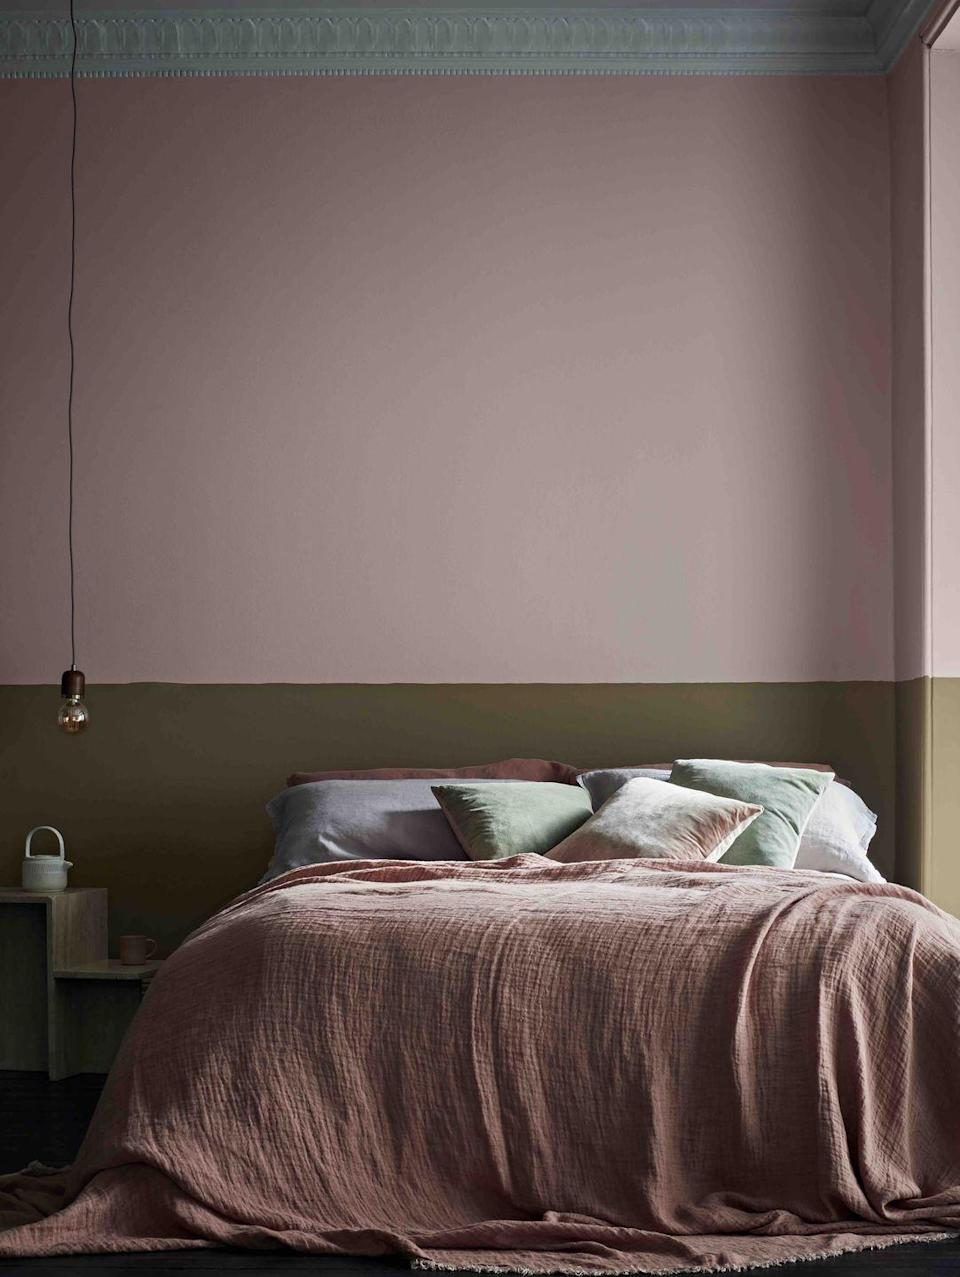 "<p>Introduce unexpected muddy tones to an otherwise pretty scheme for a sophisticated effect. The feminine '<a href=""https://www.crownpaints.co.uk/products/elle-decoration-by-crown/crafted---flat-matt/satin-lining-no.-415/18081"" rel=""nofollow noopener"" target=""_blank"" data-ylk=""slk:Satin Lining"" class=""link rapid-noclick-resp"">Satin Lining</a>' here is offset with a wraparound border of '<a href=""https://www.crownpaints.co.uk/products/elle-decoration-by-crown/botanical---flat-matt/go-green-no.-368/18078"" rel=""nofollow noopener"" target=""_blank"" data-ylk=""slk:Go Green"" class=""link rapid-noclick-resp"">Go Green</a>' and a painted ceiling rail in '<a href=""https://www.crownpaints.co.uk/products/elle-decoration-by-crown/drift---flat-matt/open-water-no.-217/18064"" rel=""nofollow noopener"" target=""_blank"" data-ylk=""slk:Open Water"" class=""link rapid-noclick-resp"">Open Water</a>', all from the ELLE Decoration by Crown collection</p>"